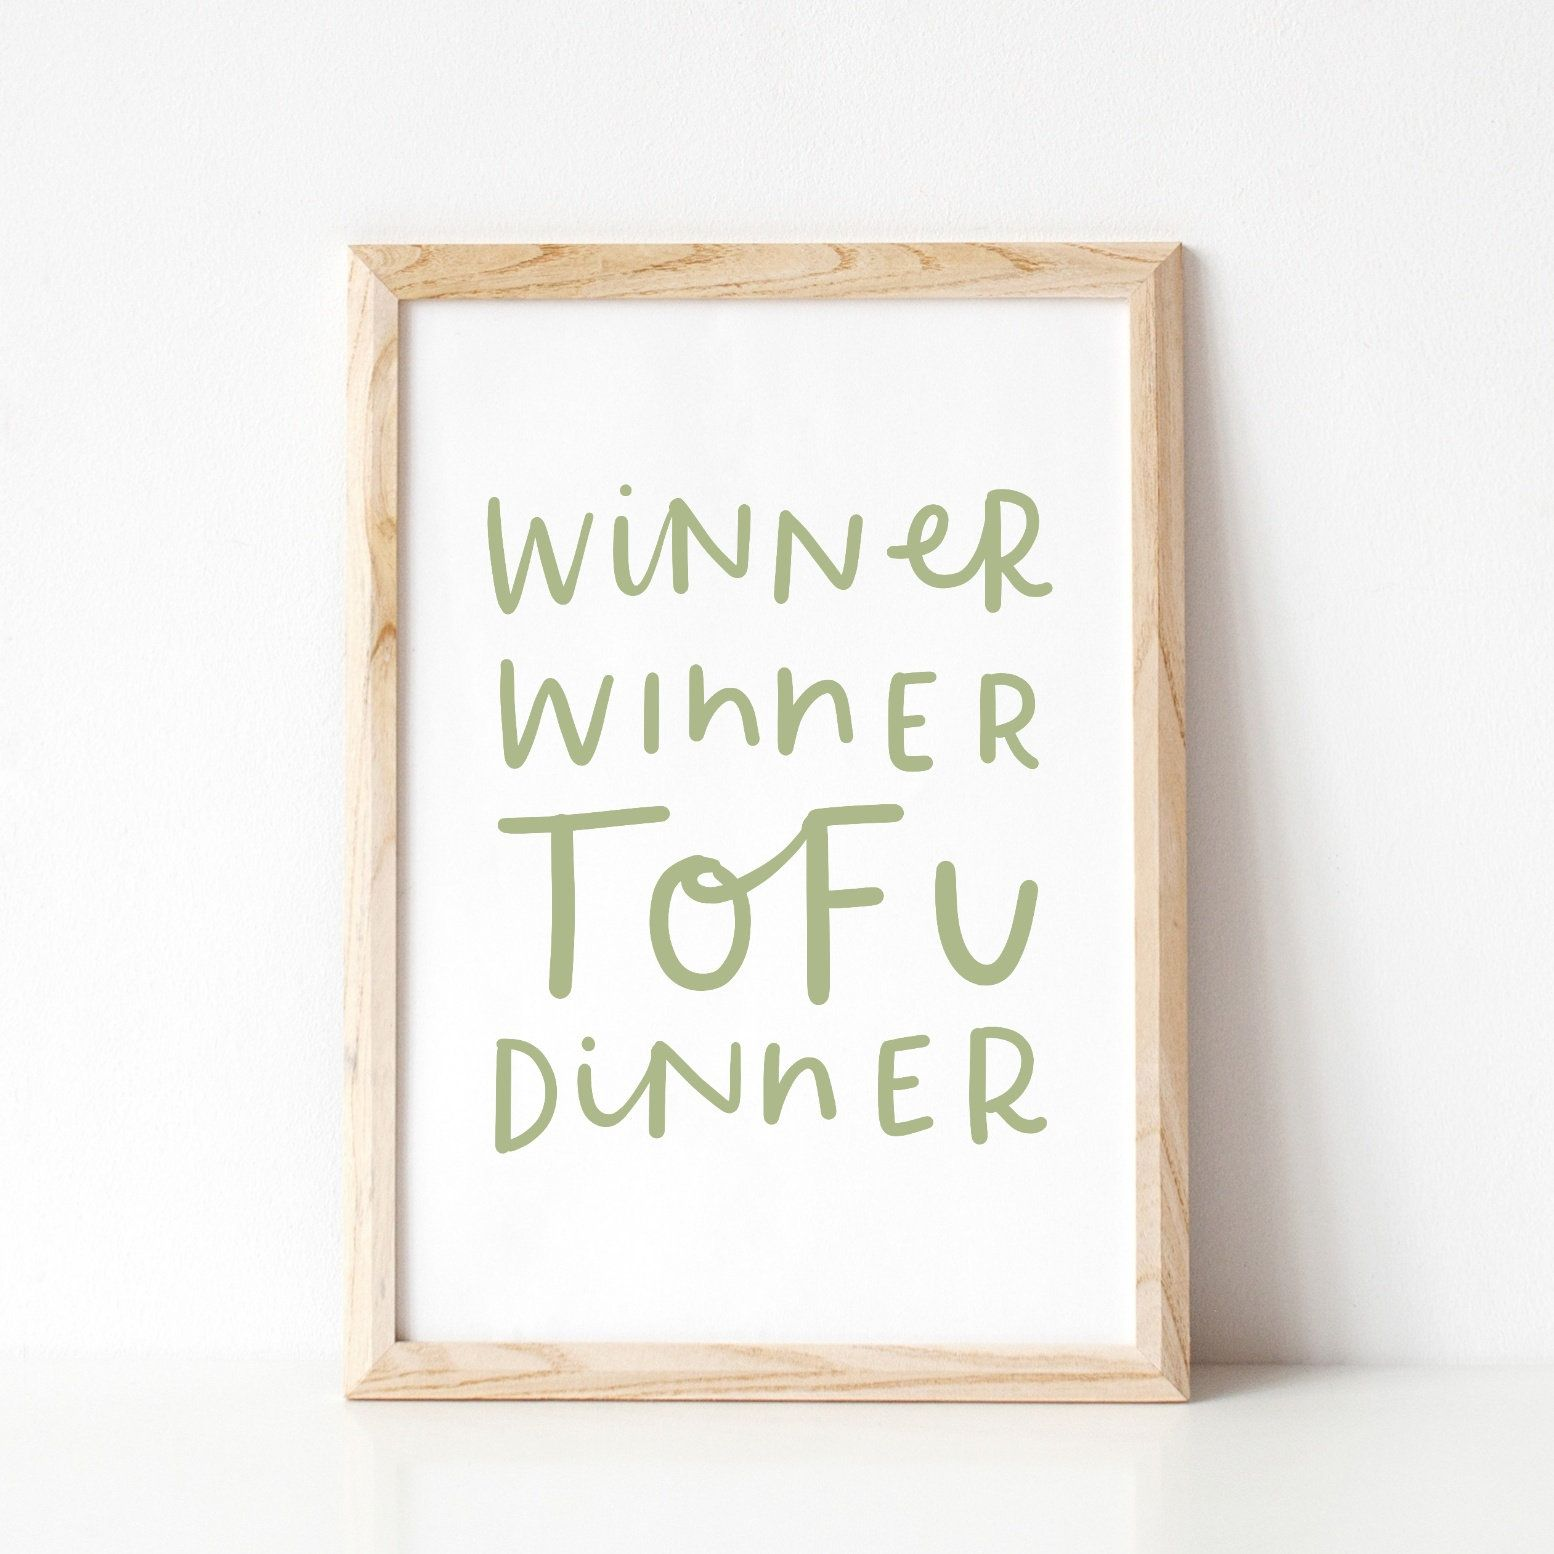 Funny Vegan Print, Vegan Gift, Winner Winner Tofu Dinner, Gift For Vegetarian, Vegetarian Quote Art #vegetarianquotes